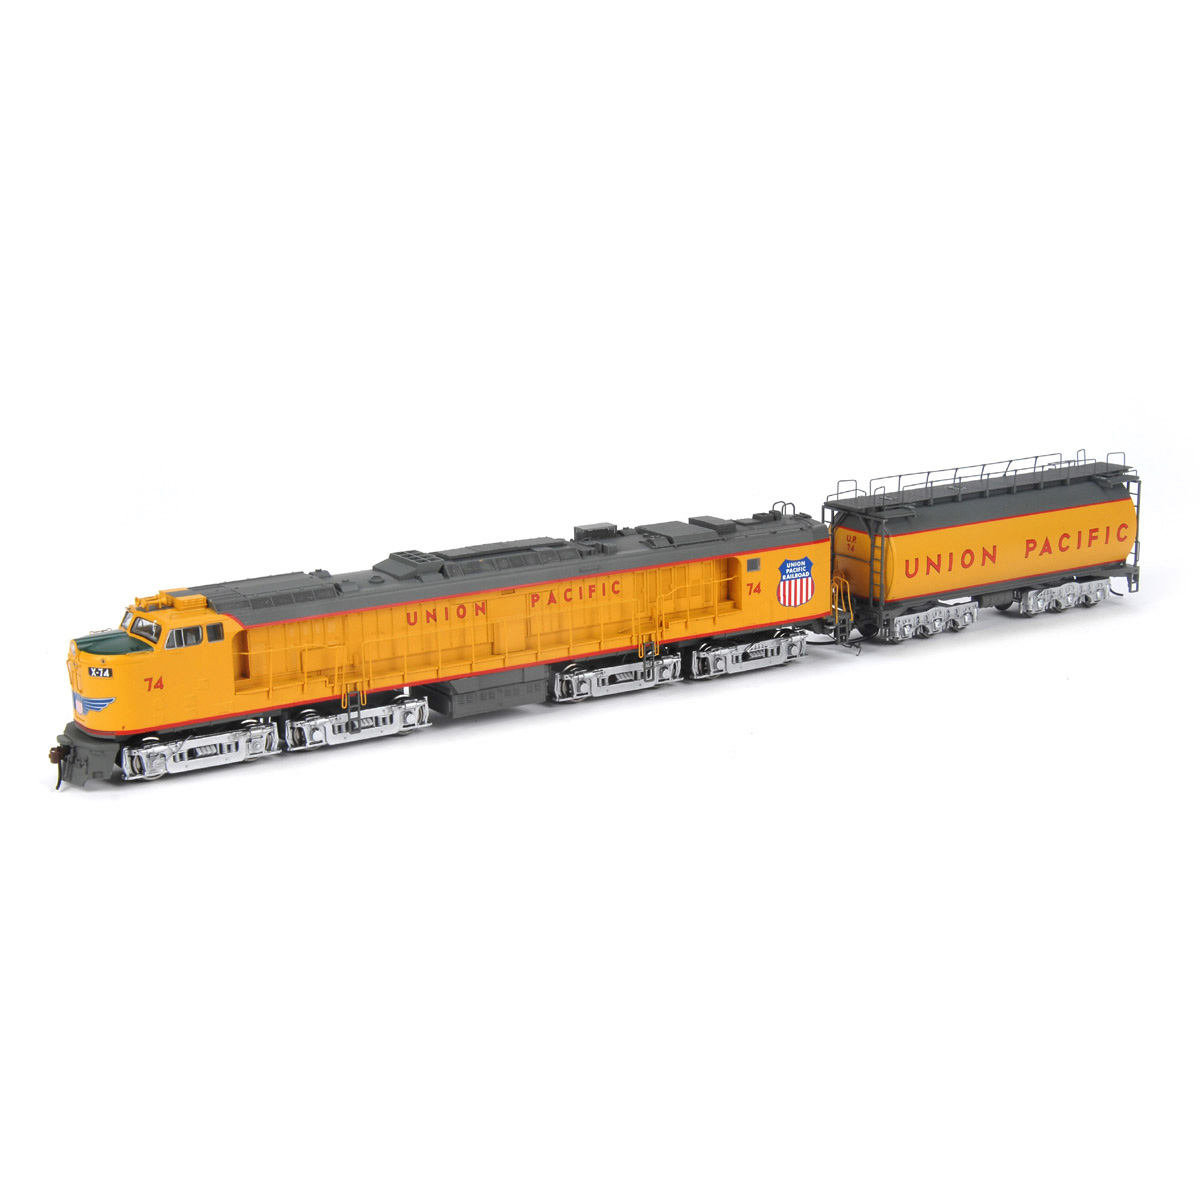 Ho Rtr Veranda Turbine W Tender Up 74 Ath88669 Athearn Trains